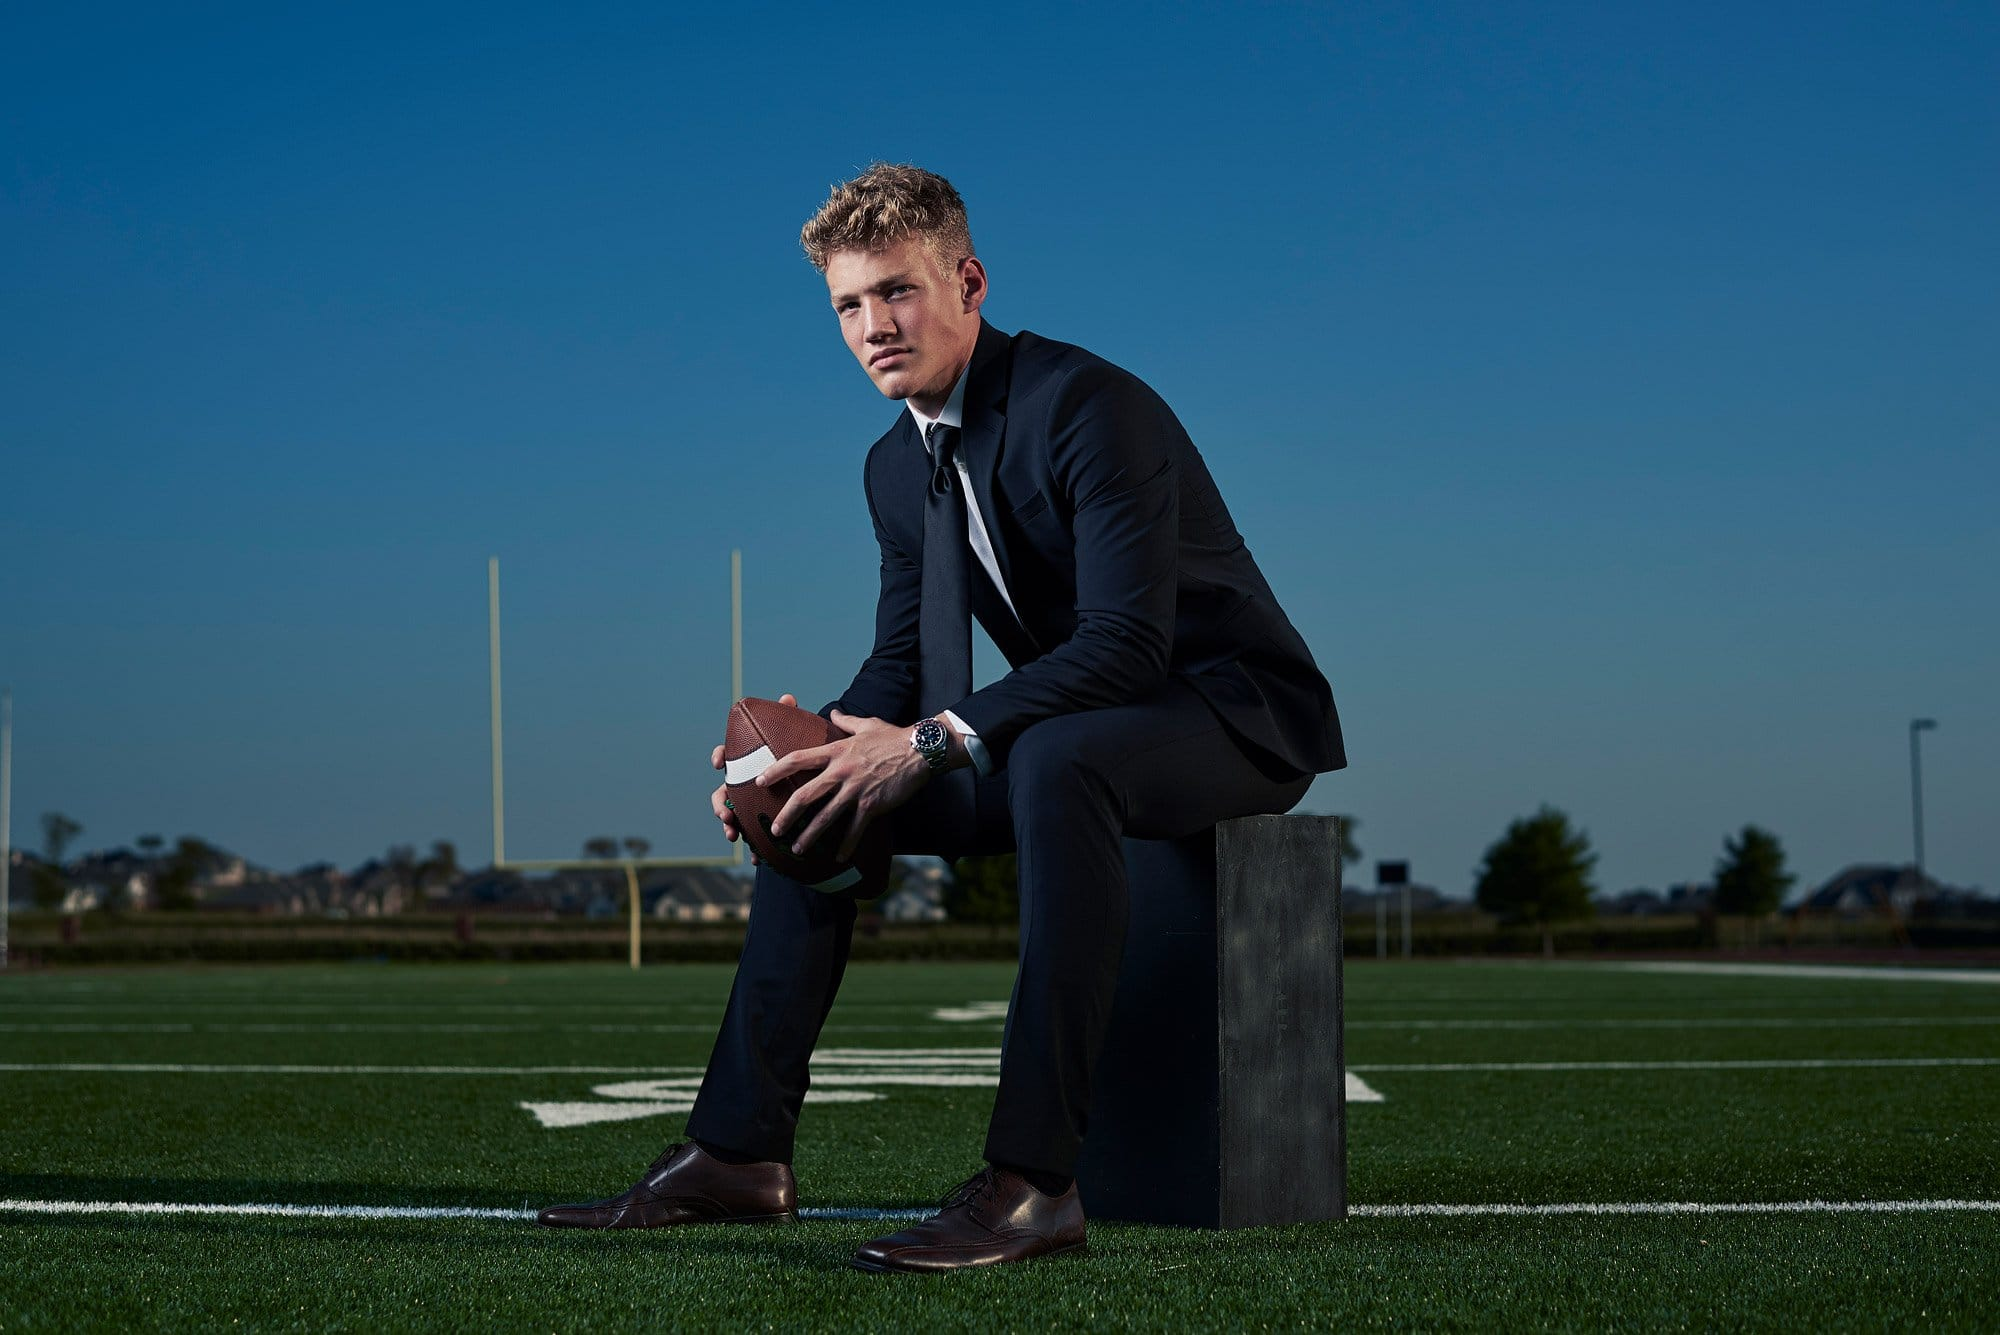 Prosper senior photos of football player on high school field in suit